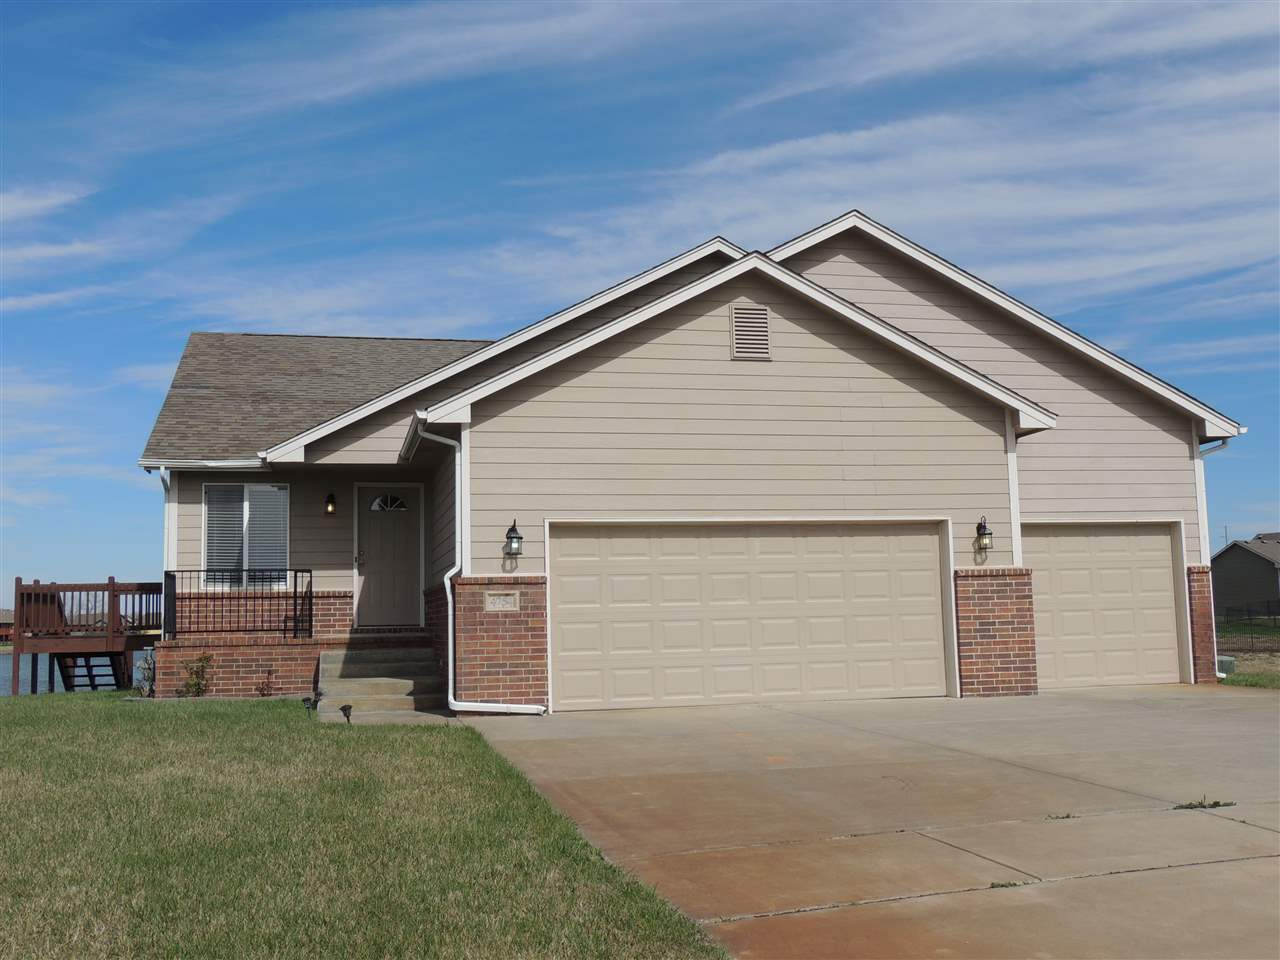 Well cared for home with 2 bedrooms, 2 baths, and a 3 car garage! The basement has been framed in an